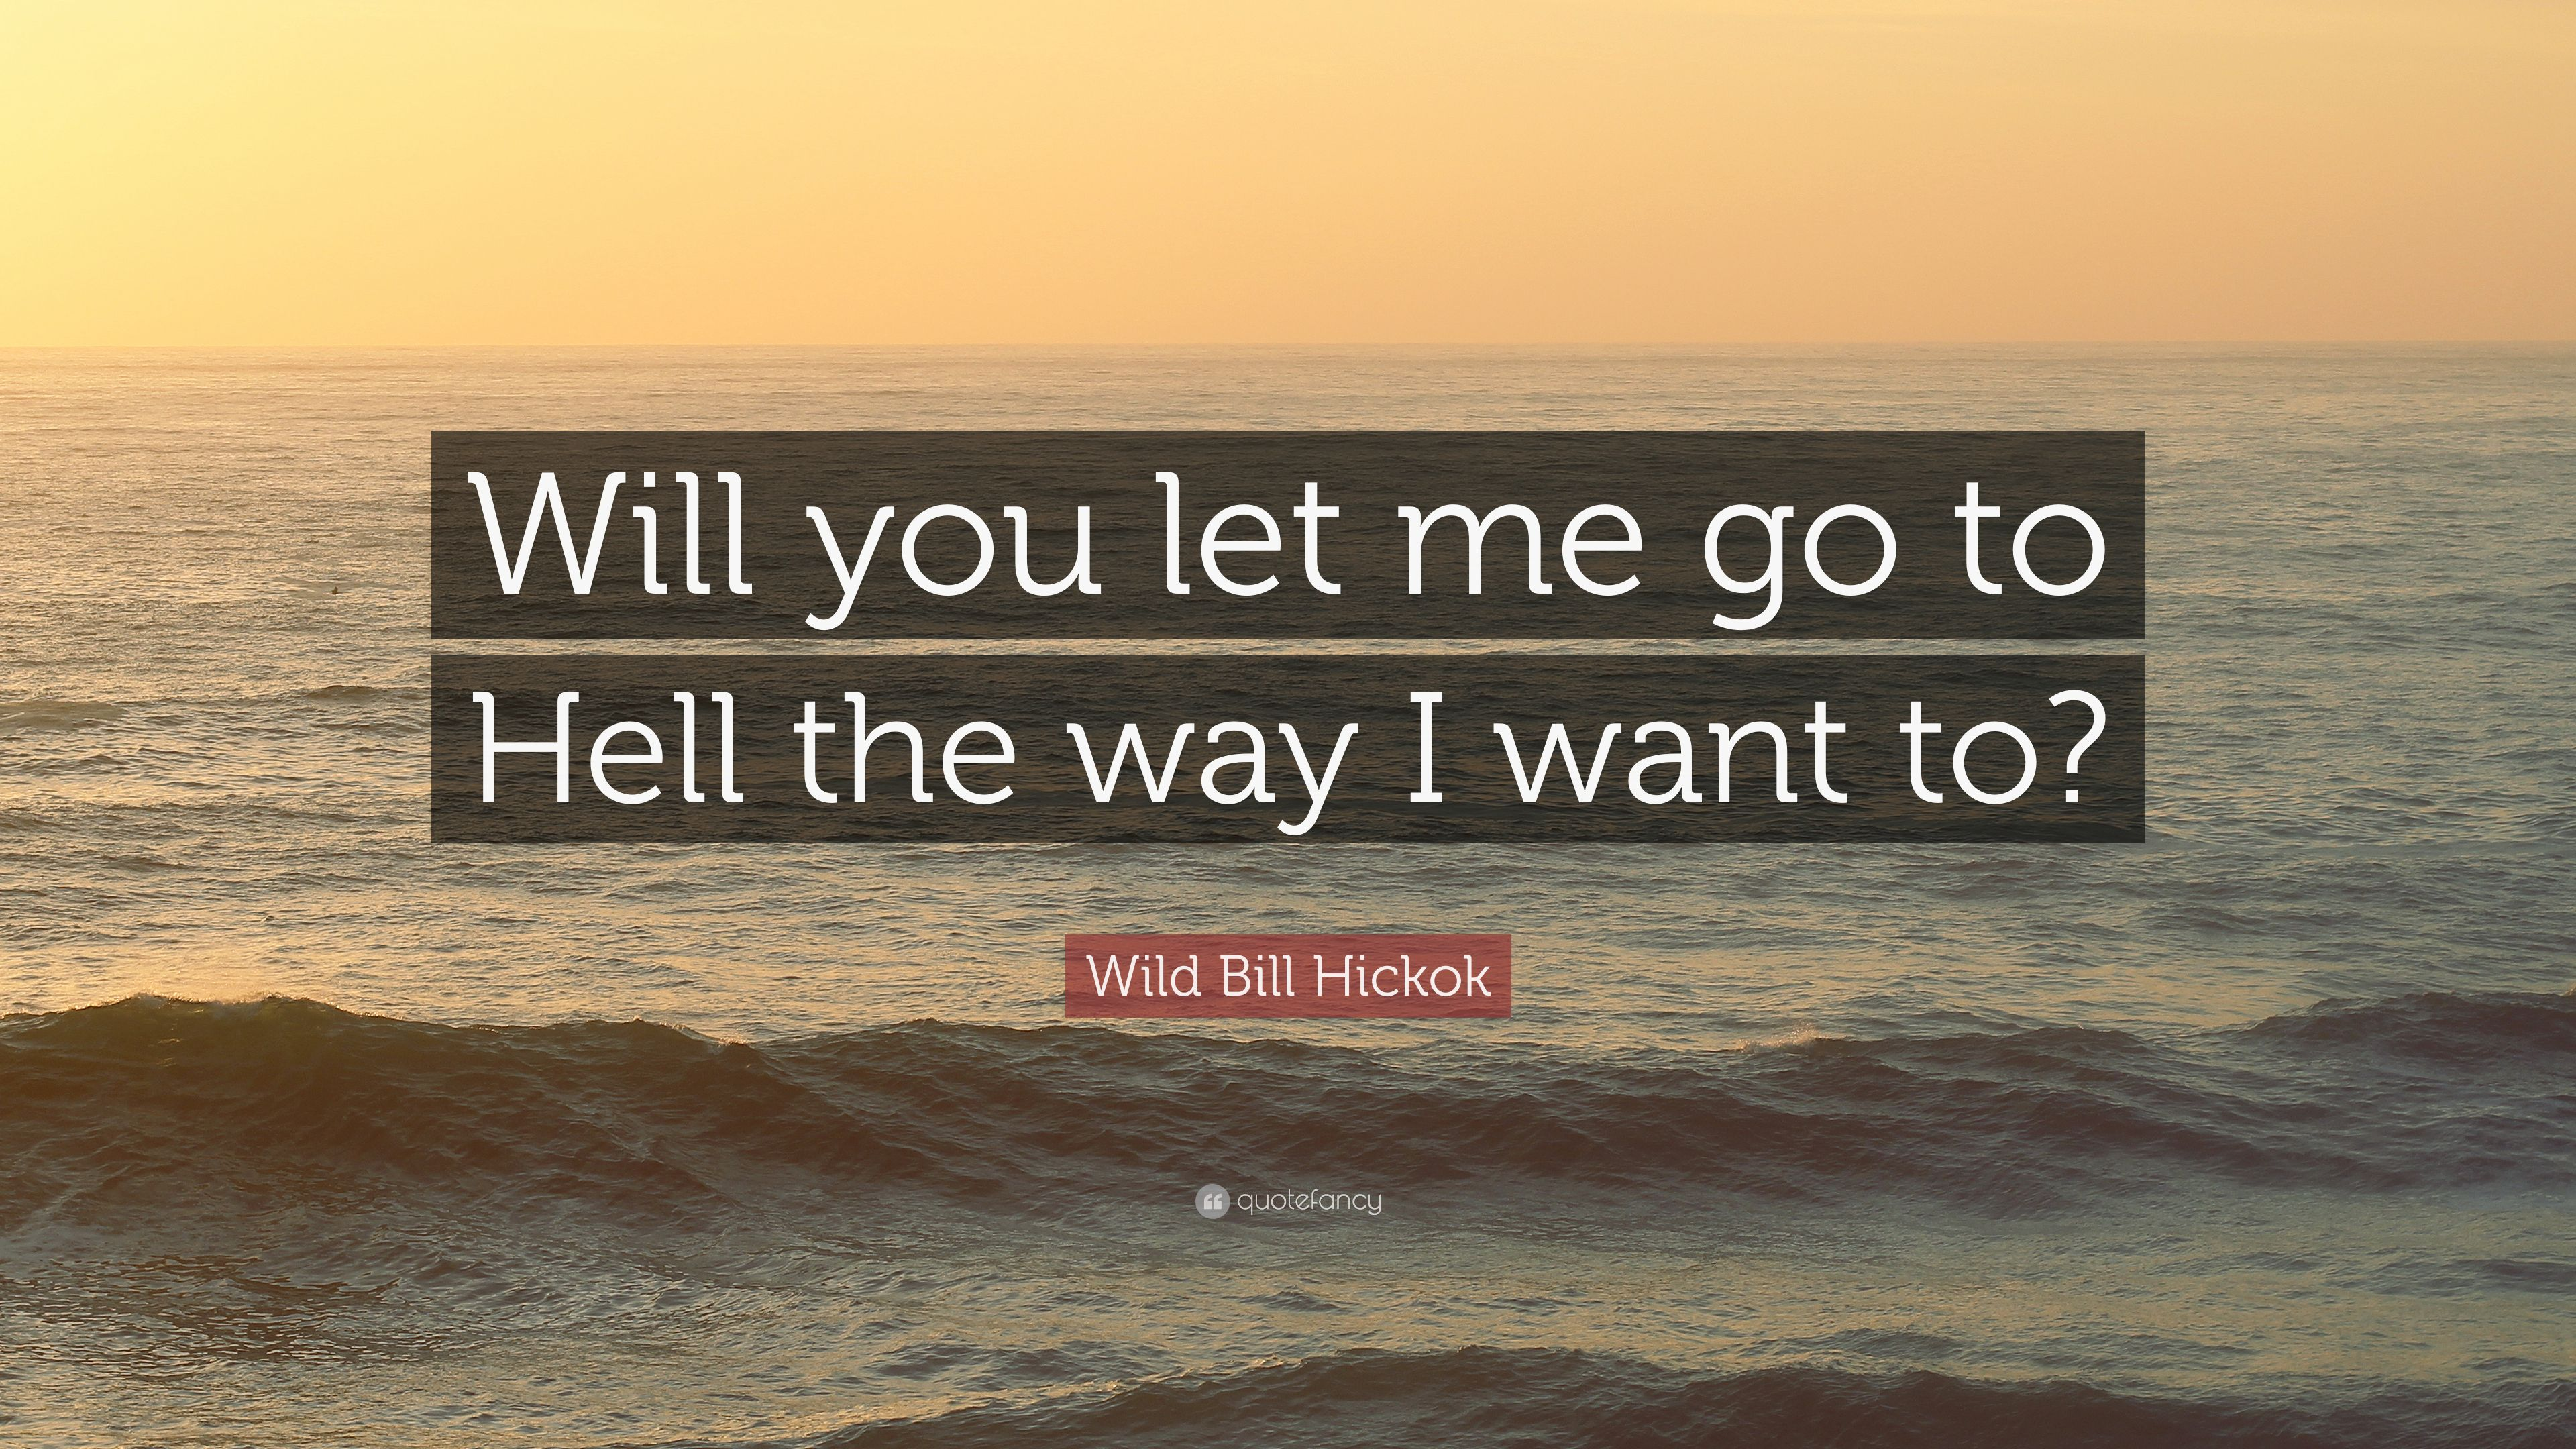 Wild Bill Hickok Quote Will You Let Me Go To Hell The Way I Want